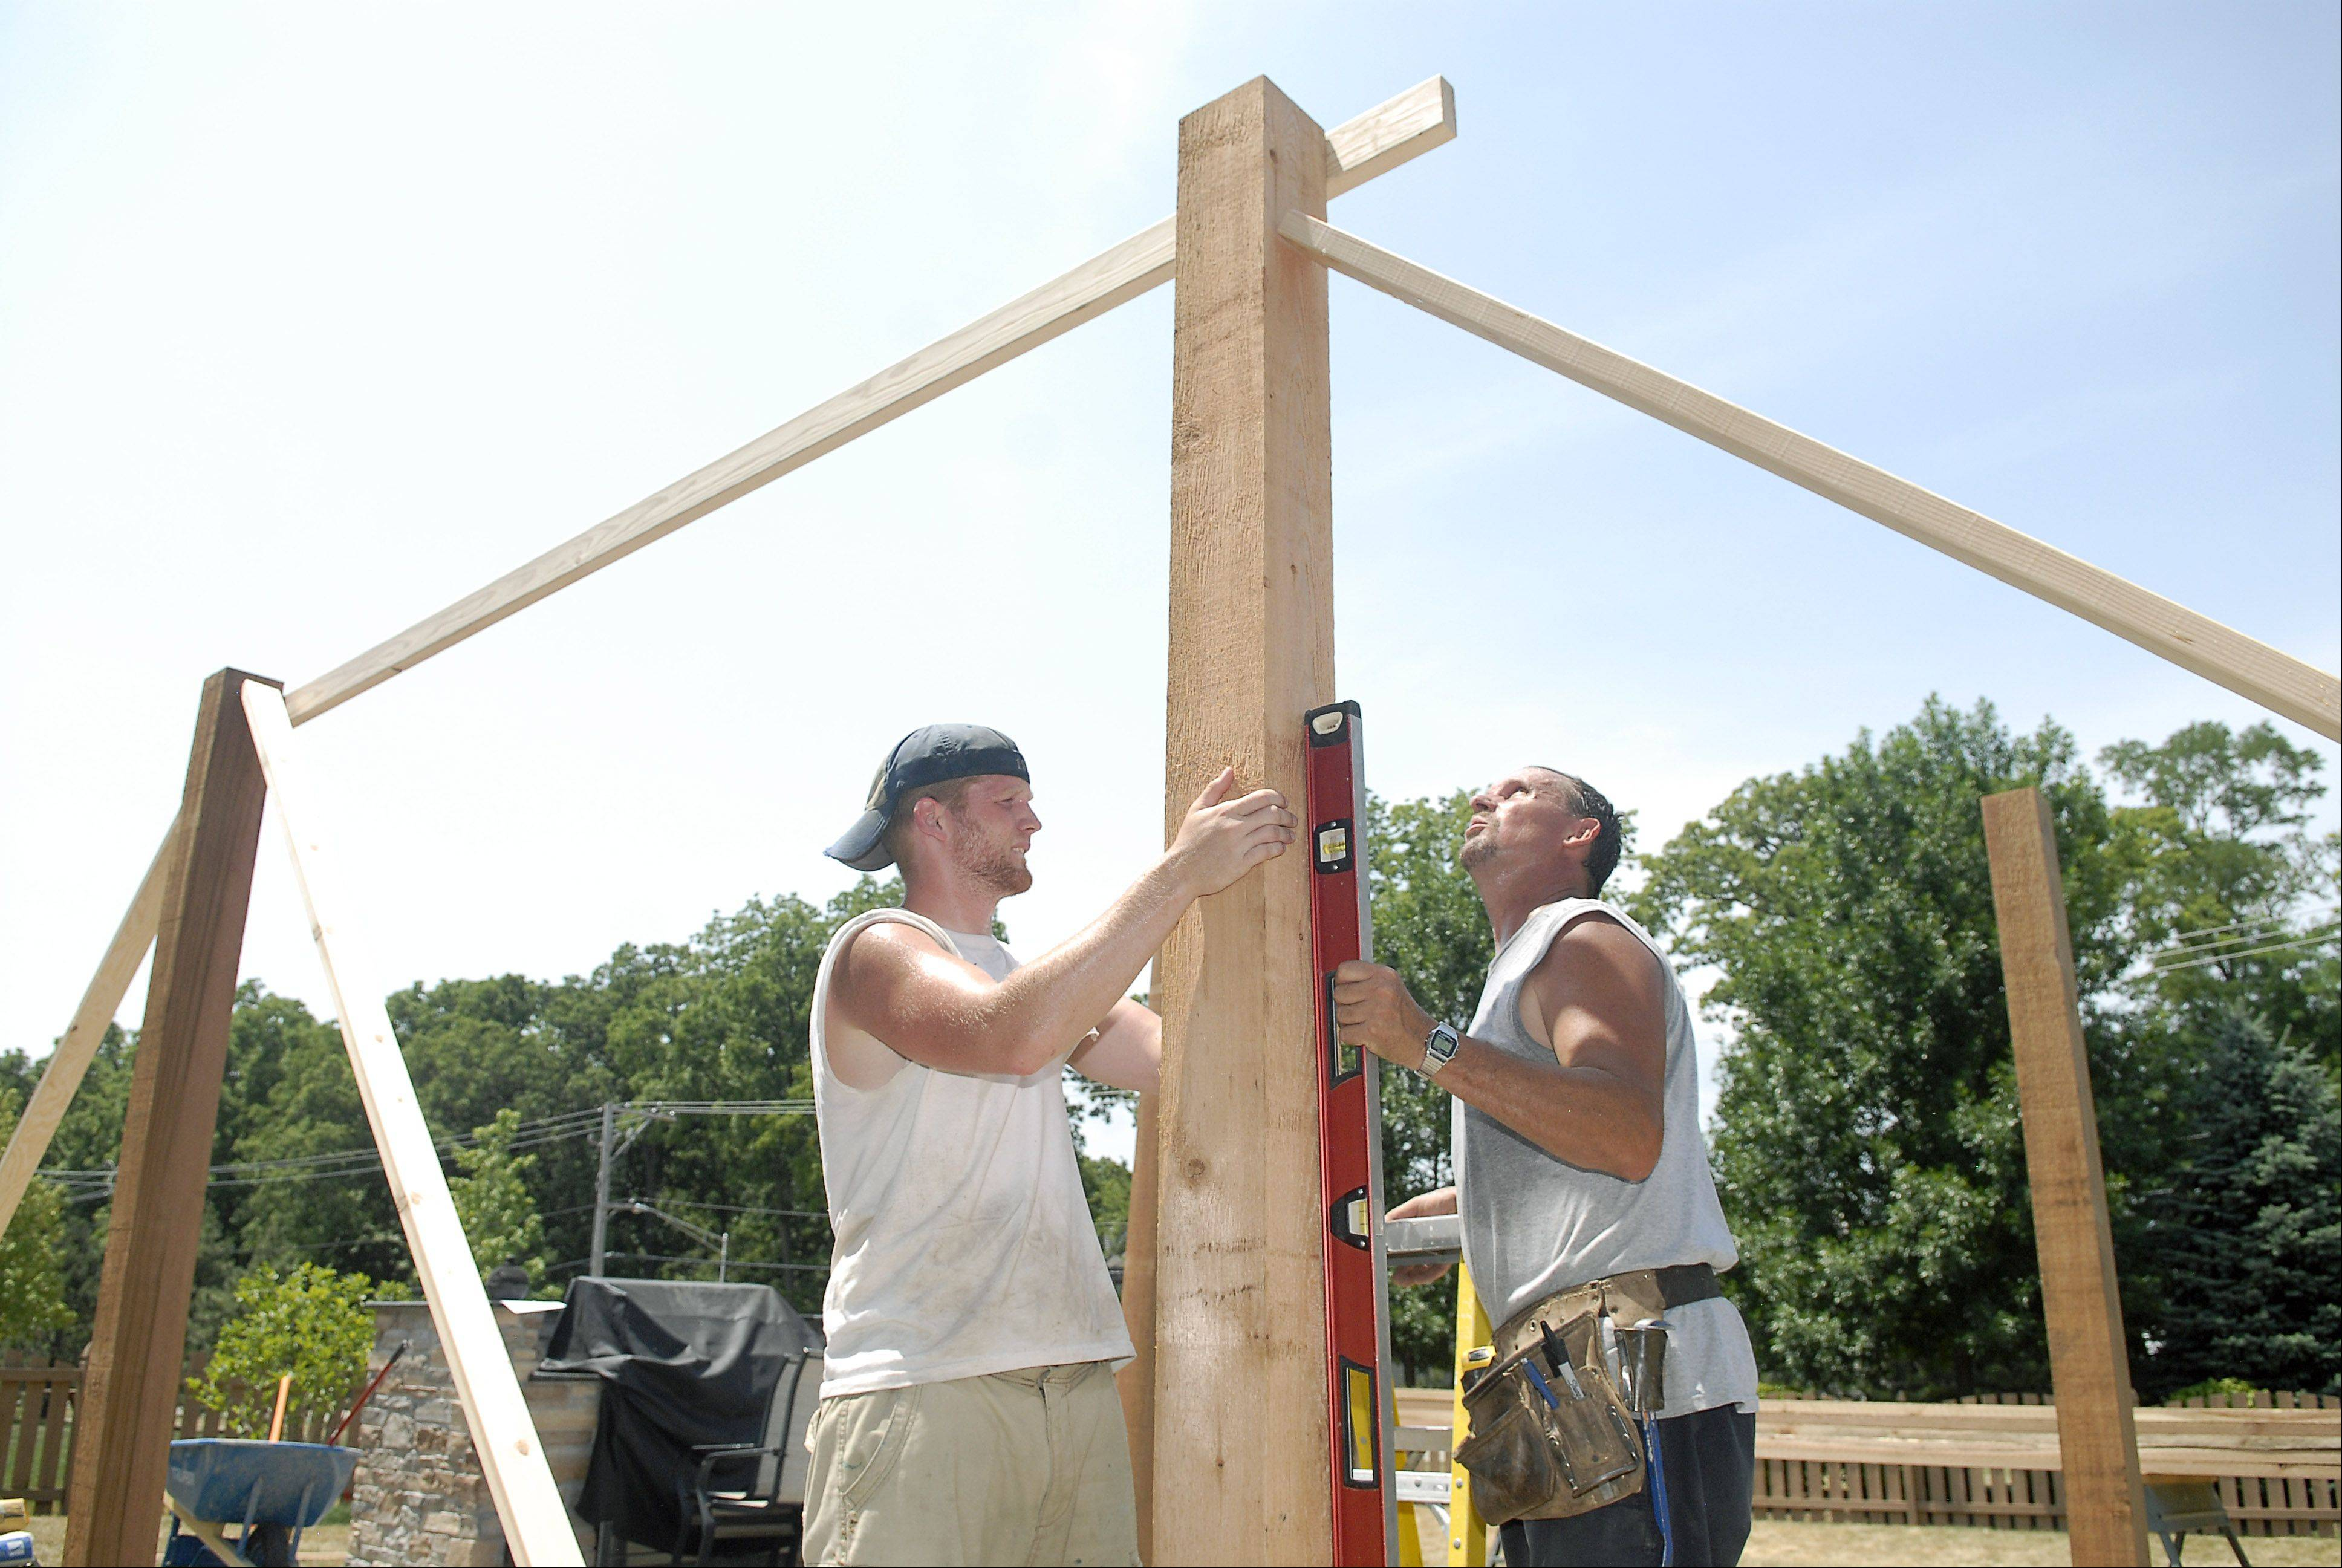 "Joe Weston, owner of JW Construction out of Lake Geneva, WI, and employee Max Hanna work on installing a pergola in the back yard of a Carpentersville home on Thursday, July 5. Weston likes to start early in order end early on hot days like this. He finds the extreme heat easier to deal with than extreme cold. ""The heat's easier to deal with. You can take a lot of breaks."" They manage the heat and are able to continue working in it by taking several water breaks in the shade."